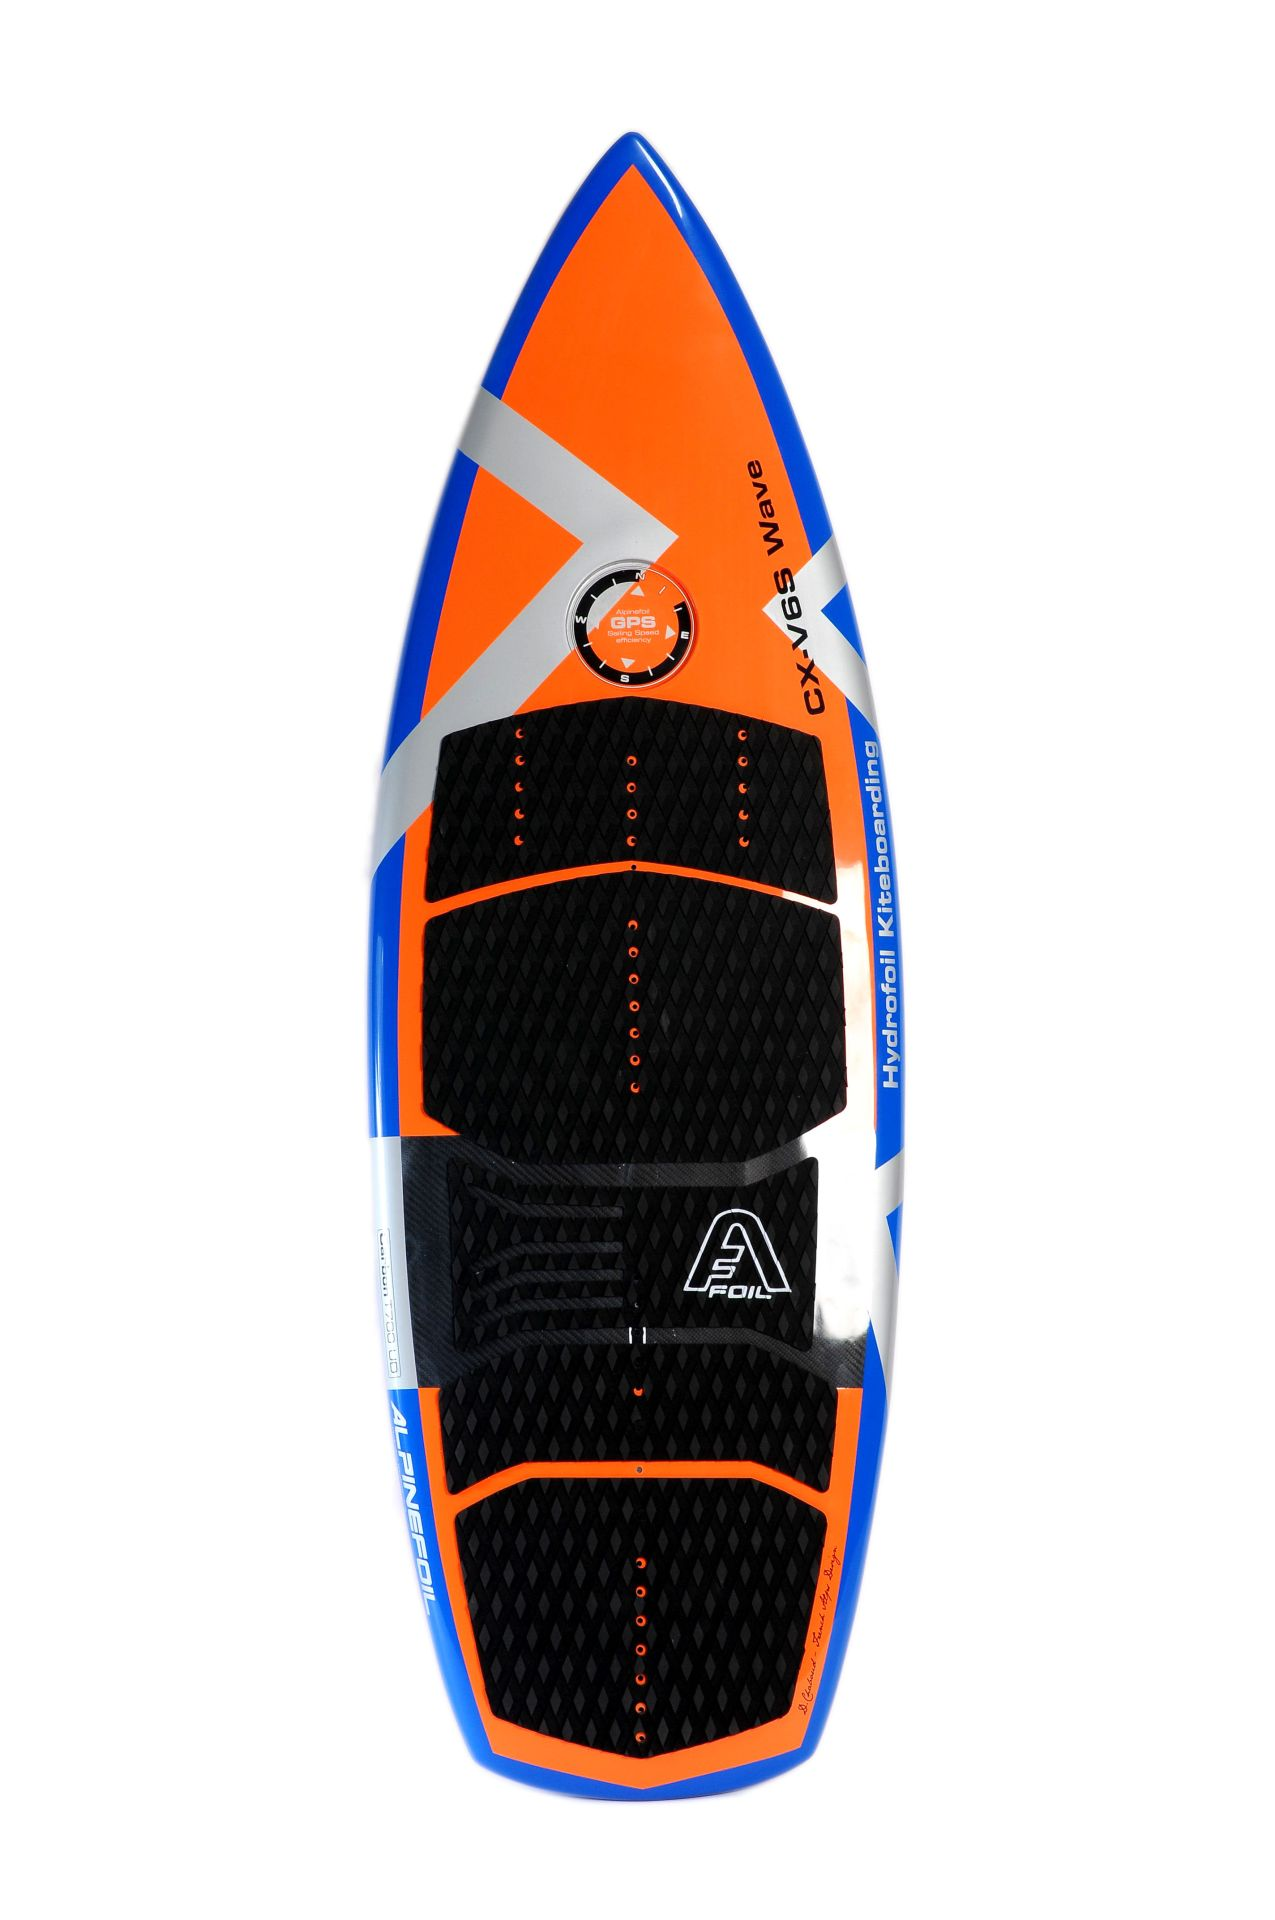 Kitefoil board alpinefoil cx v6 wave convertible 4220 1